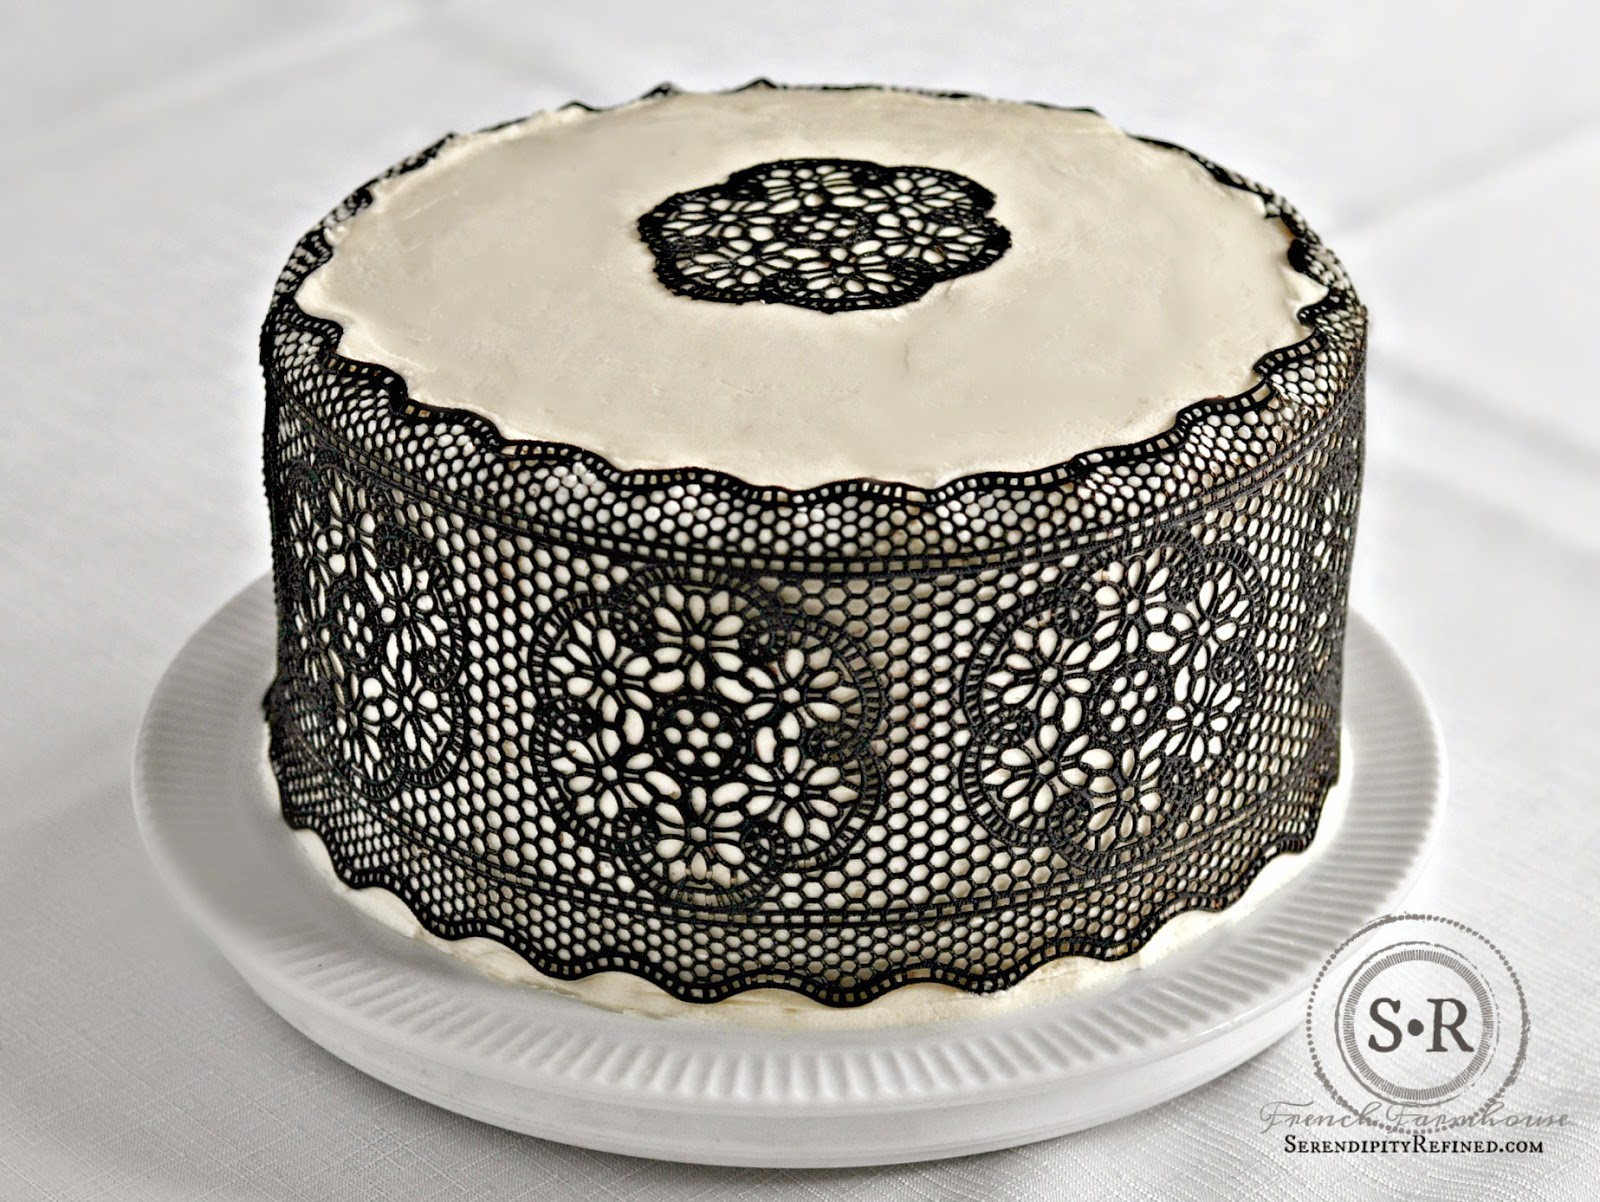 serendipity refined blog easy chocolate lace cake decorations - Chocolate Decorations